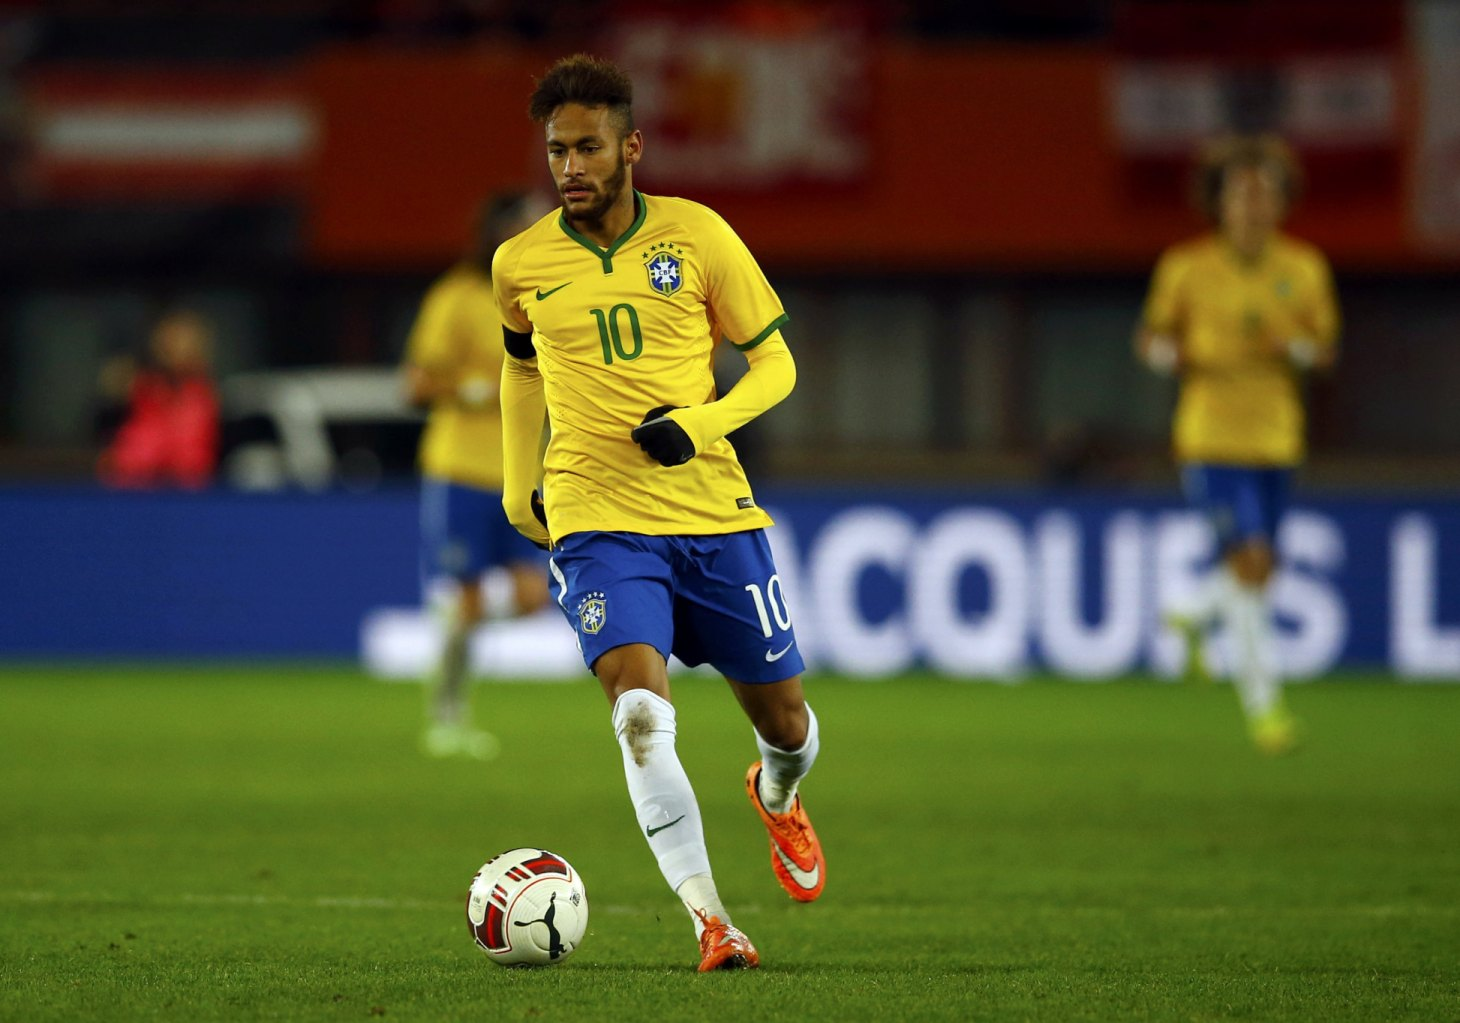 Neymar moving the ball forward in Vienna